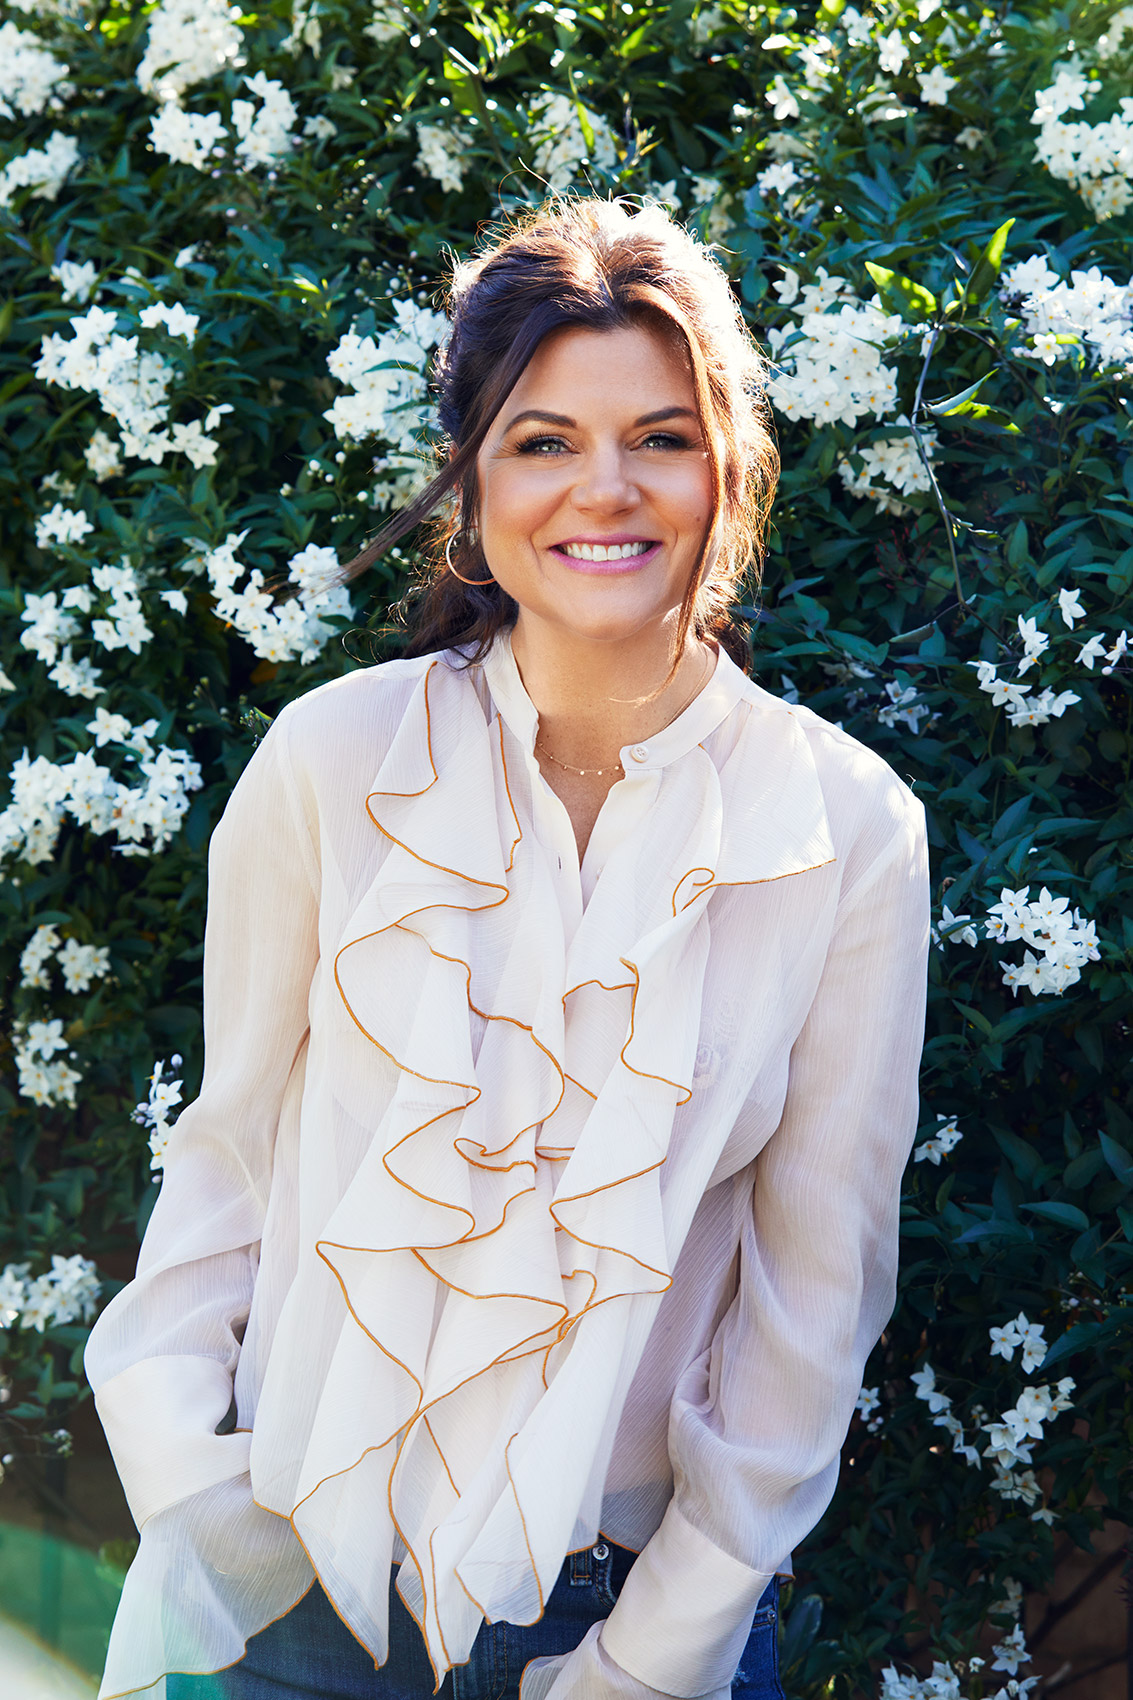 Kimberly_Genevieve_Tiffani_Thiessen_08